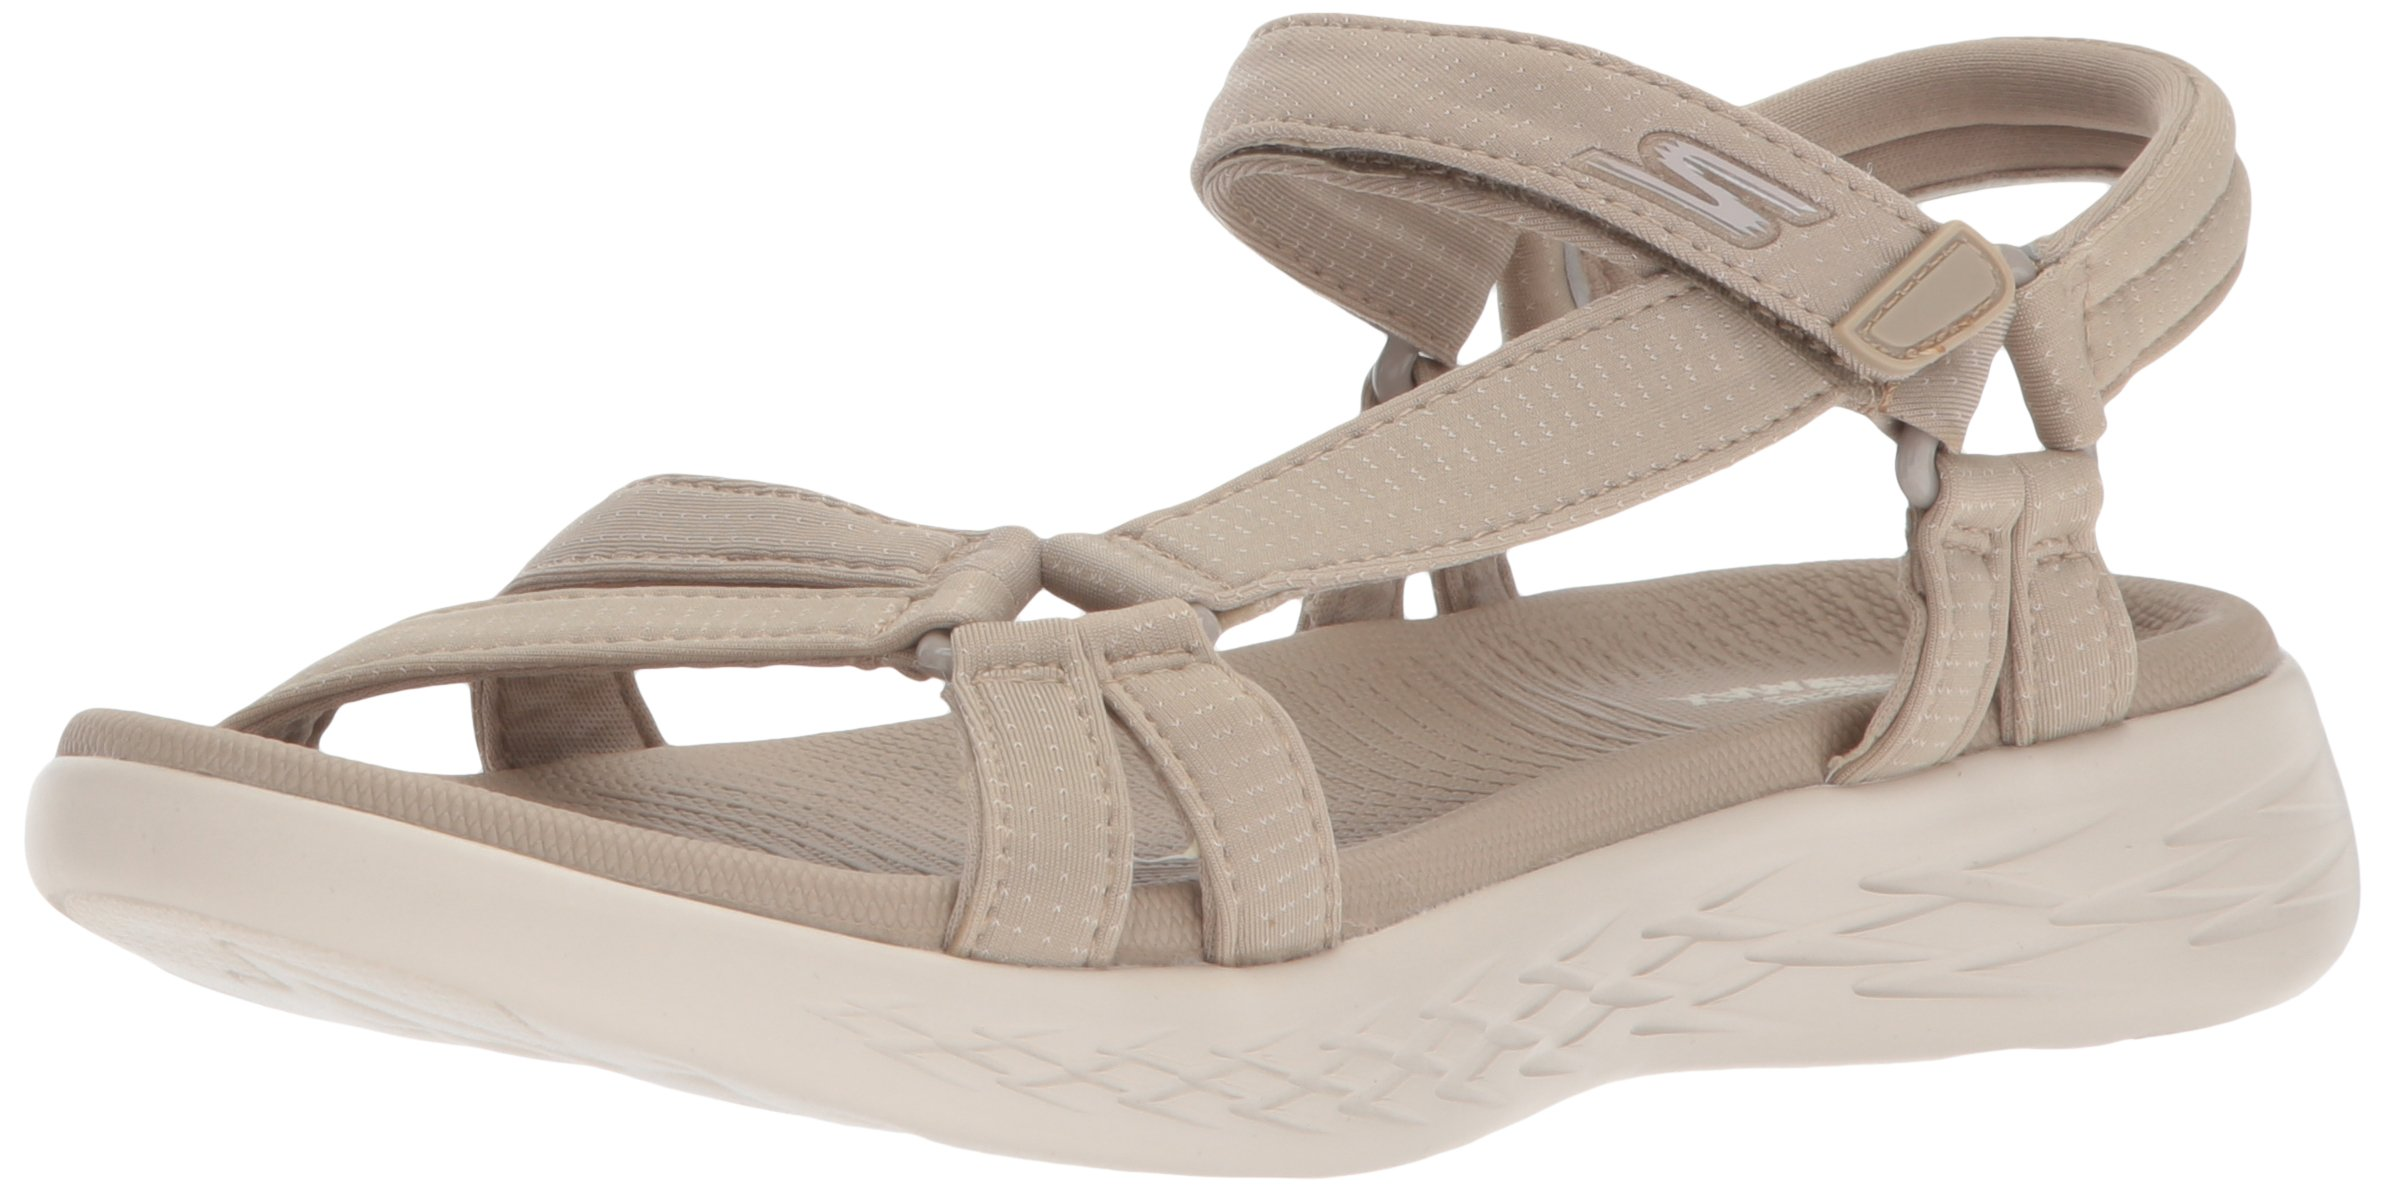 Skechers Performance Women's on-the-Go 600-Brilliancy Sport Sandal, natural, 8 M US by Skechers